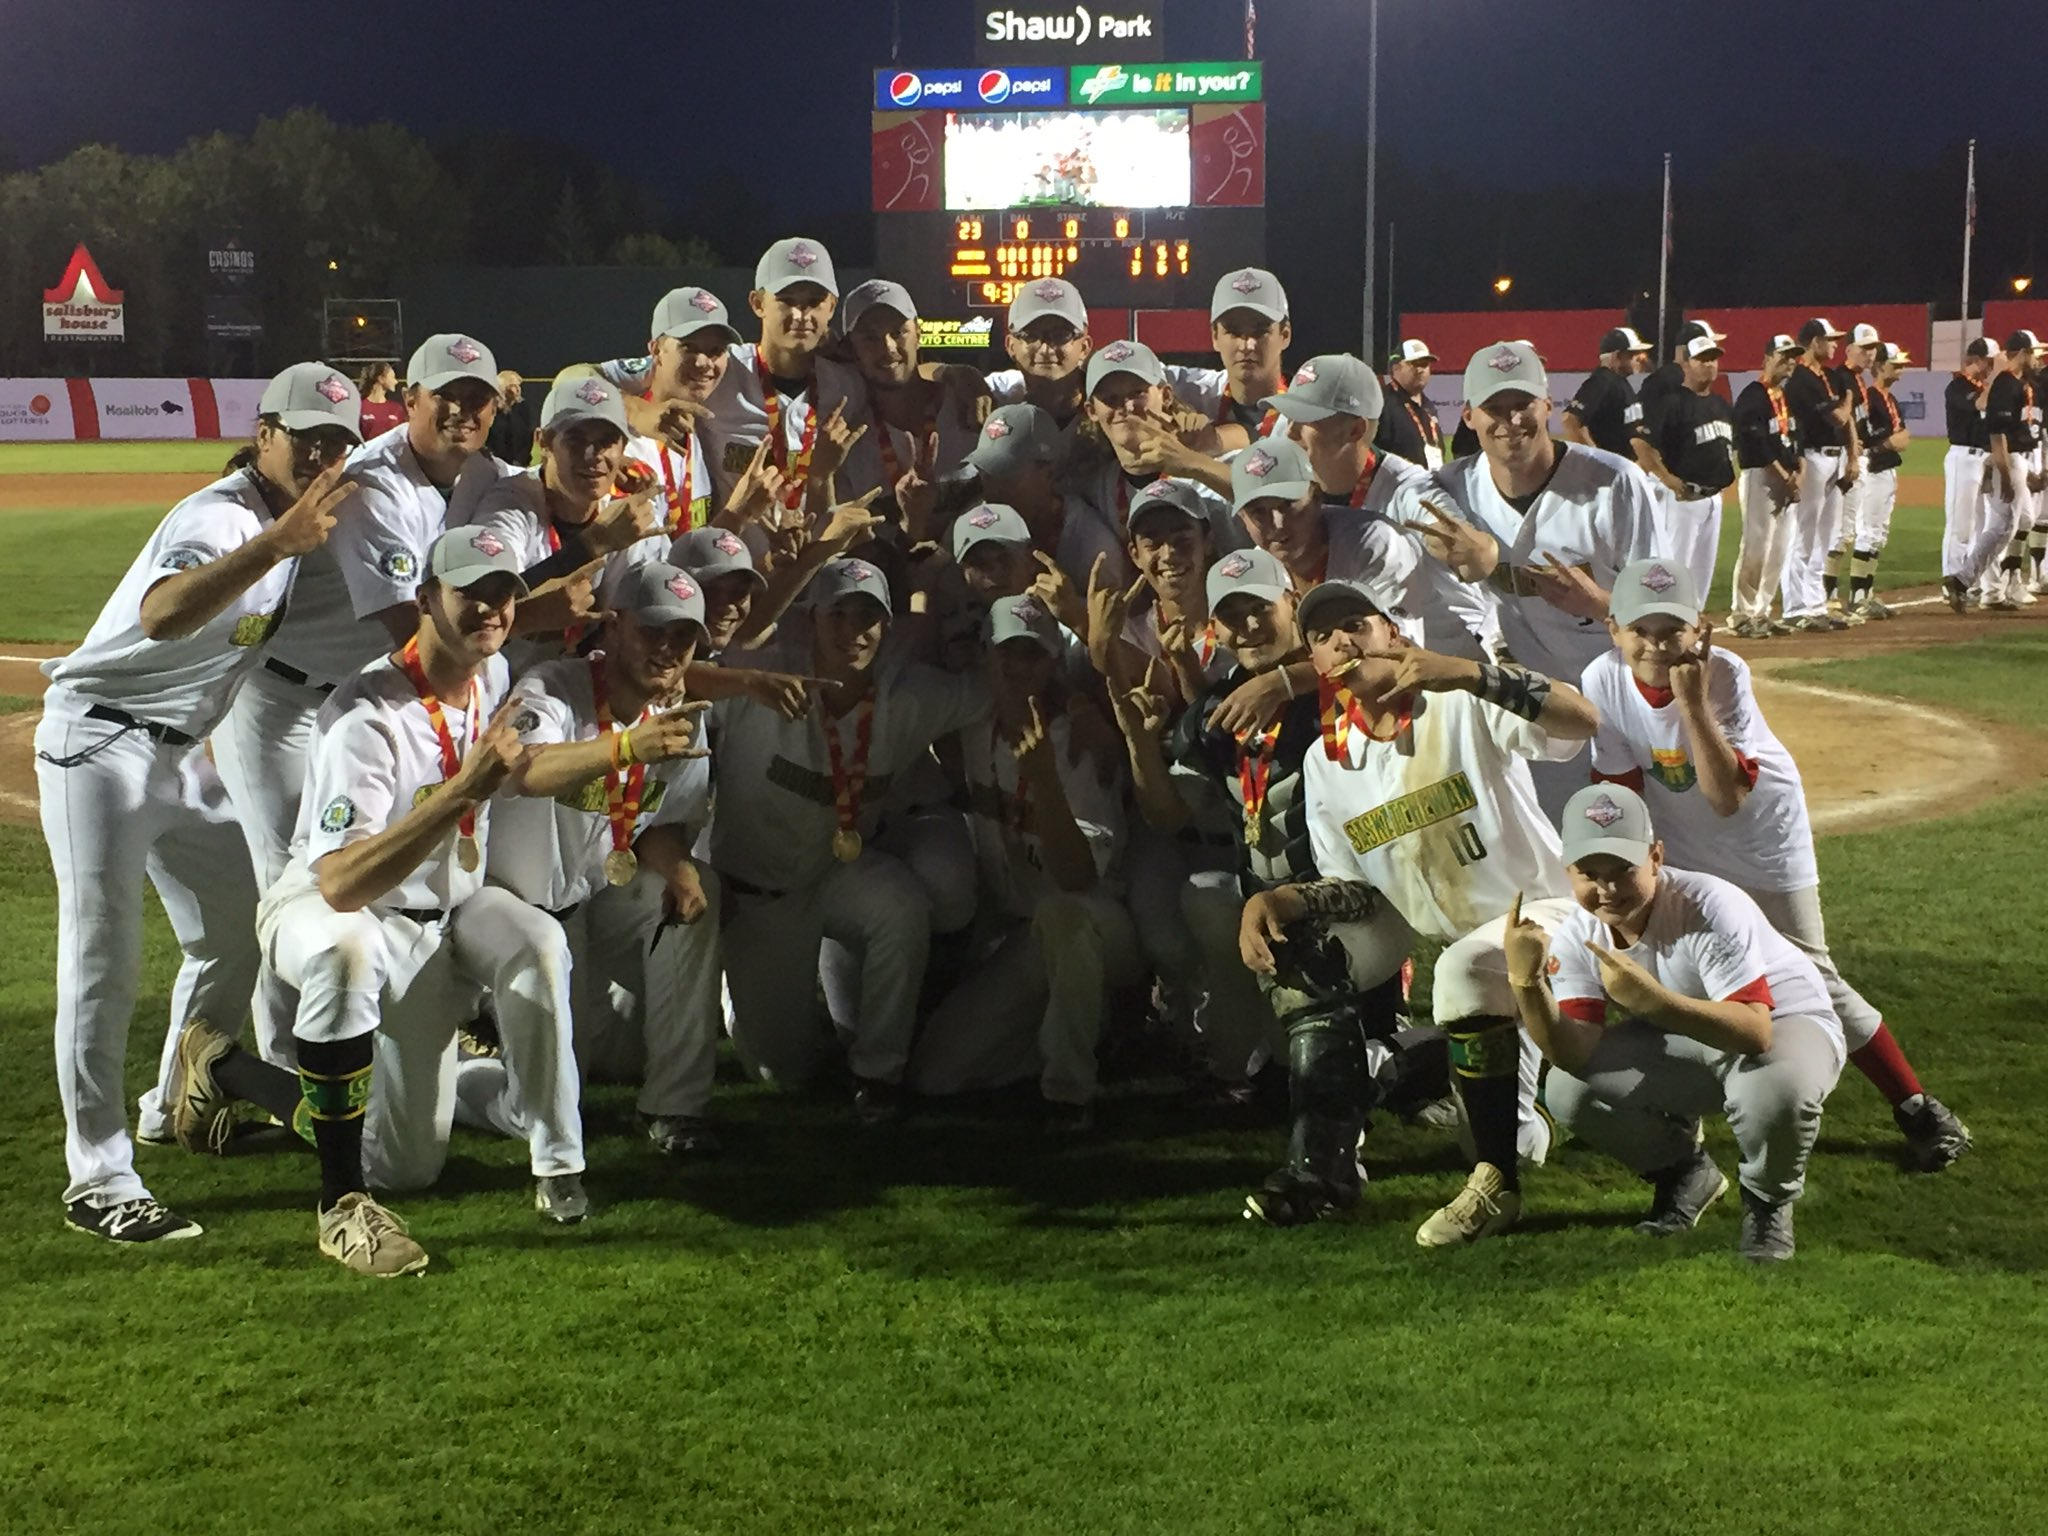 Congrats to @BaseballSask! #CGBaseball⚾️ gold medal winners! 🥇#JCG2017 https://t.co/NHcqOS1Dxd